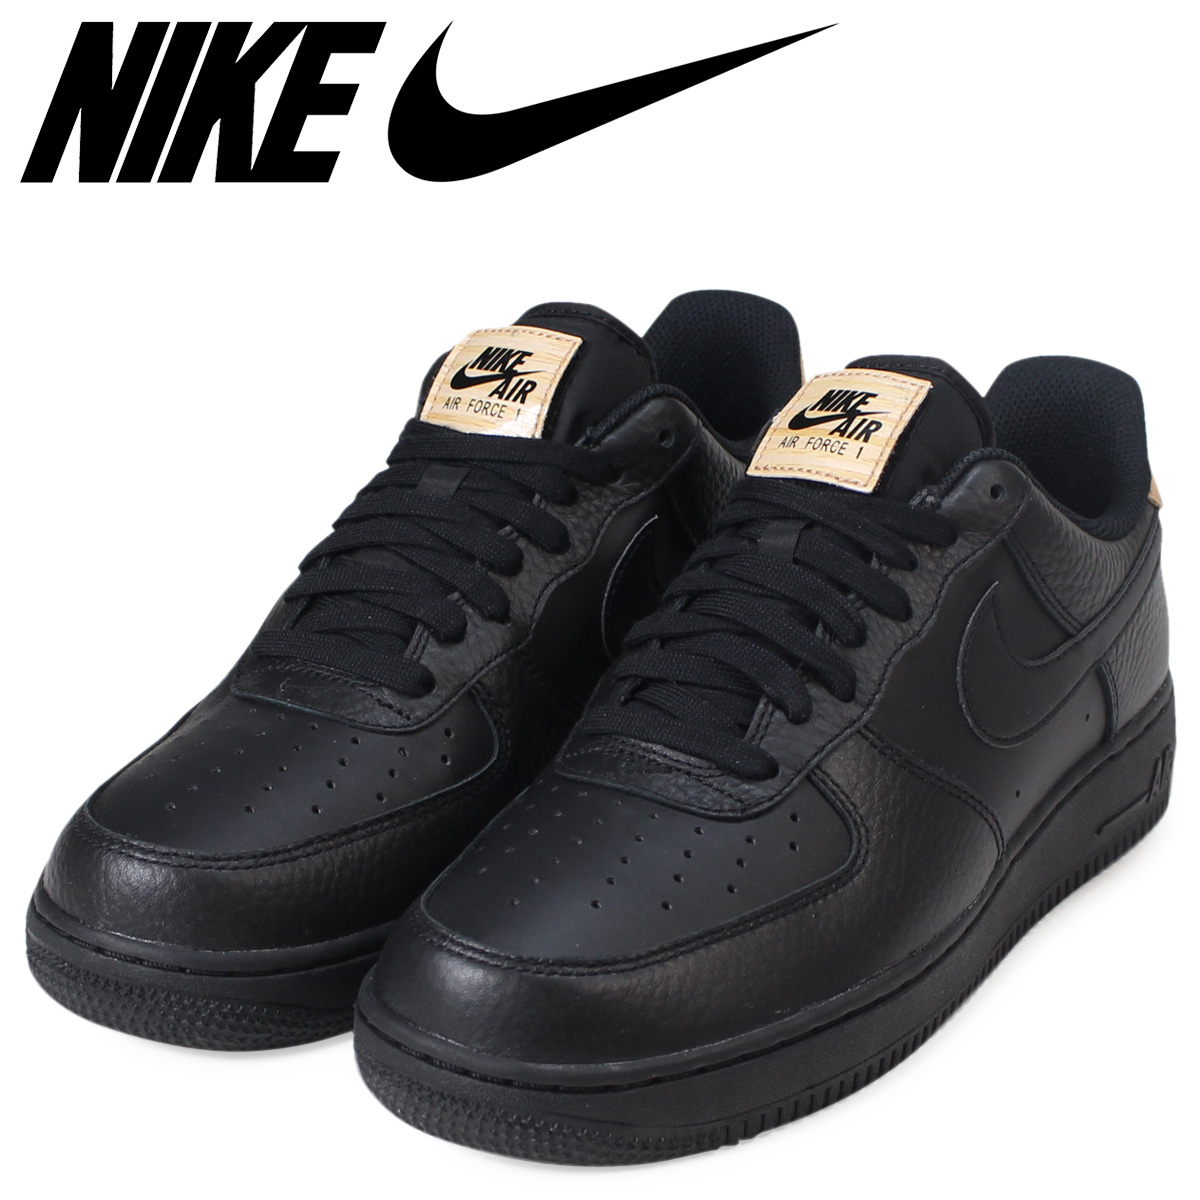 Force Low 1 Whats SportsNike Sneakers Air Up OlwXkPZTiu